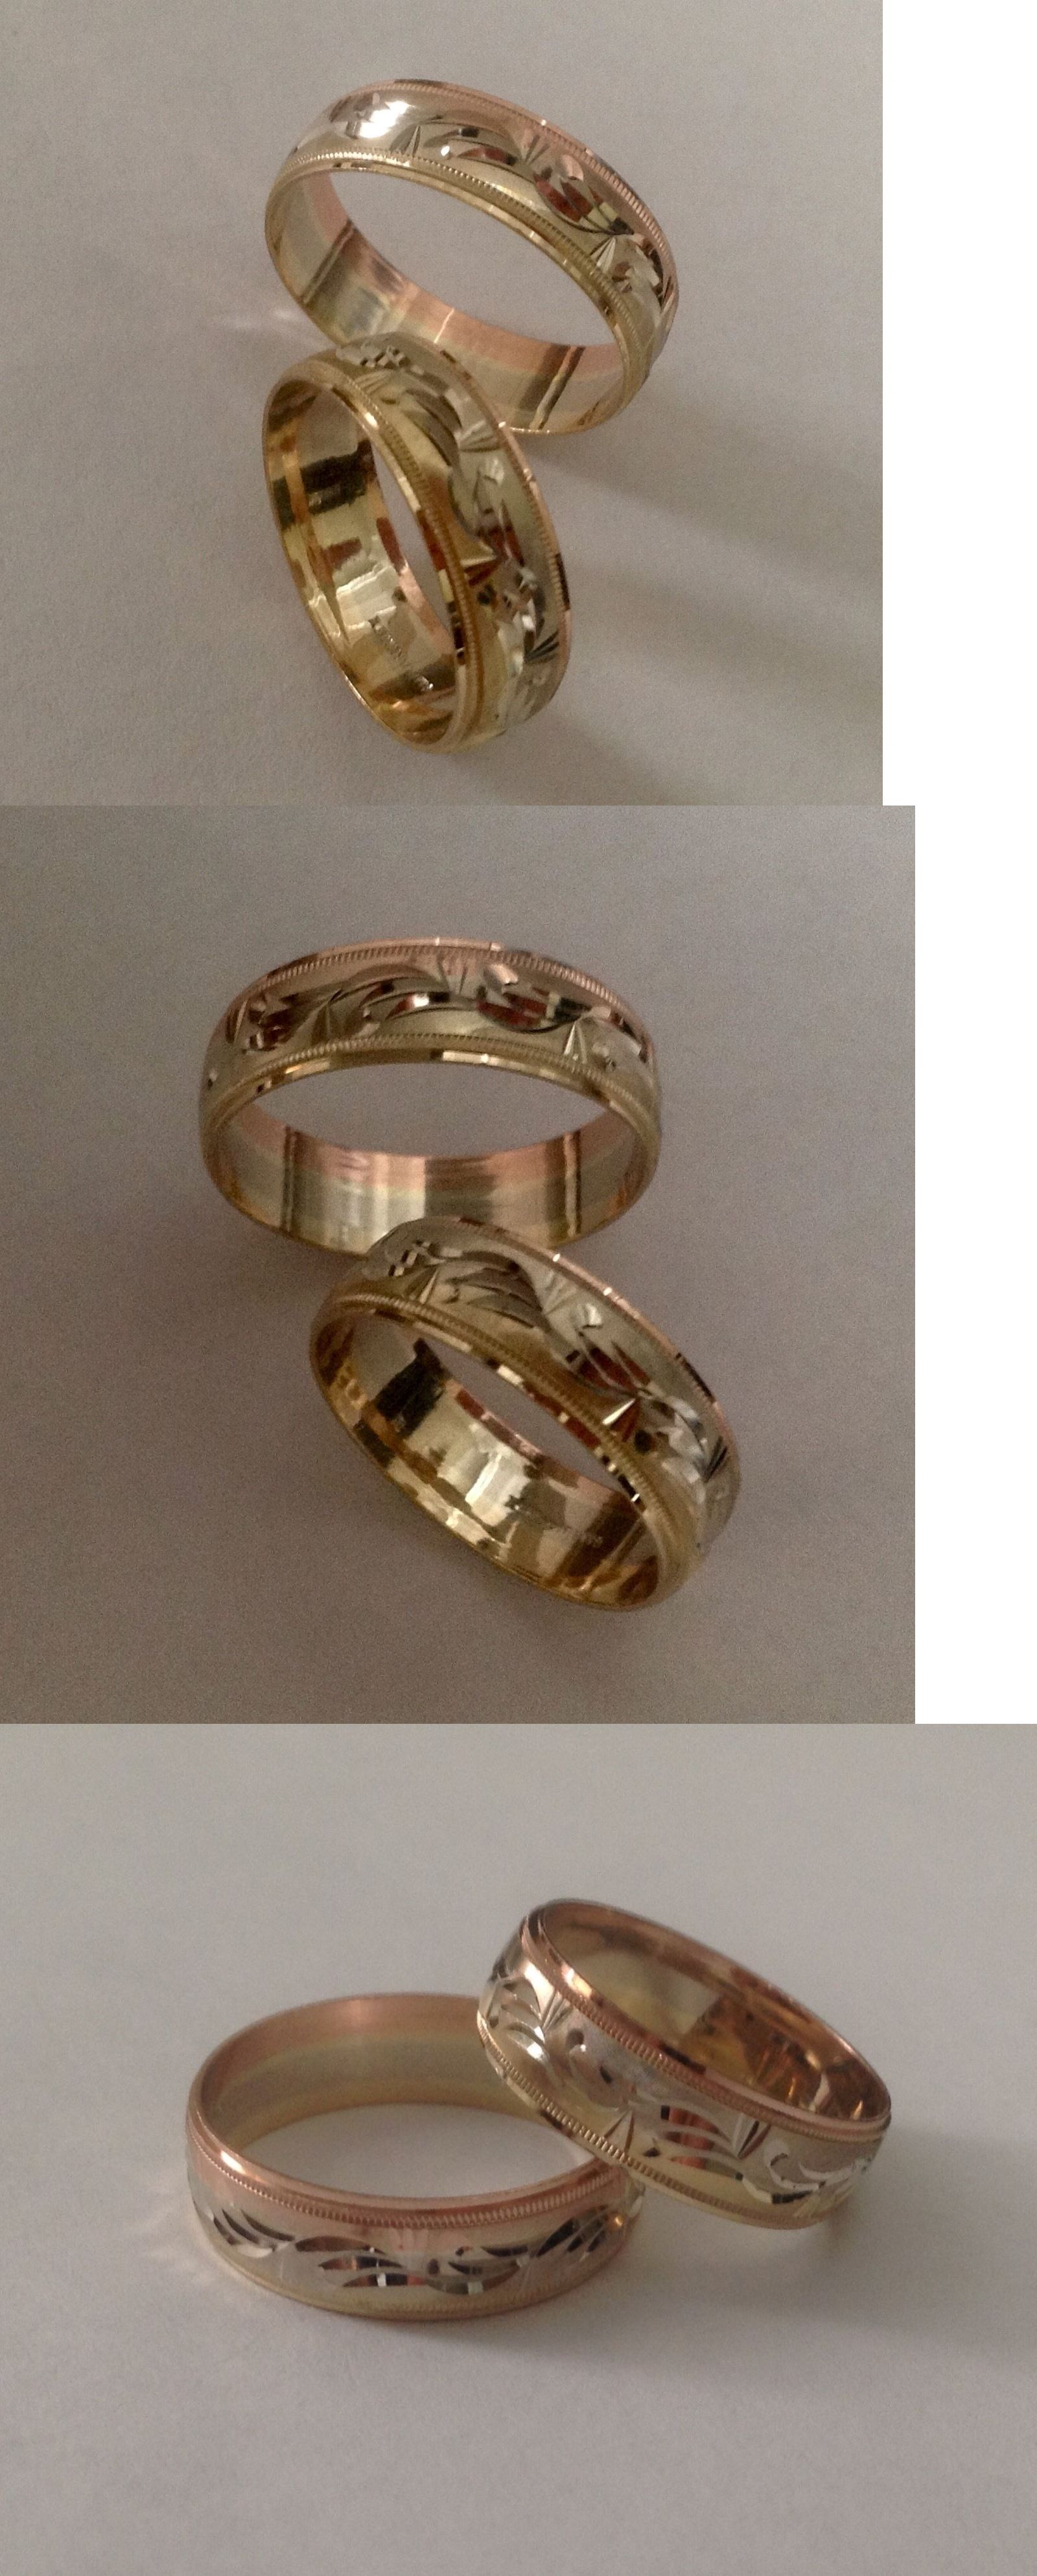 bands with motif gold boomer ring black style diamond tri main and colored rings hills yellow in